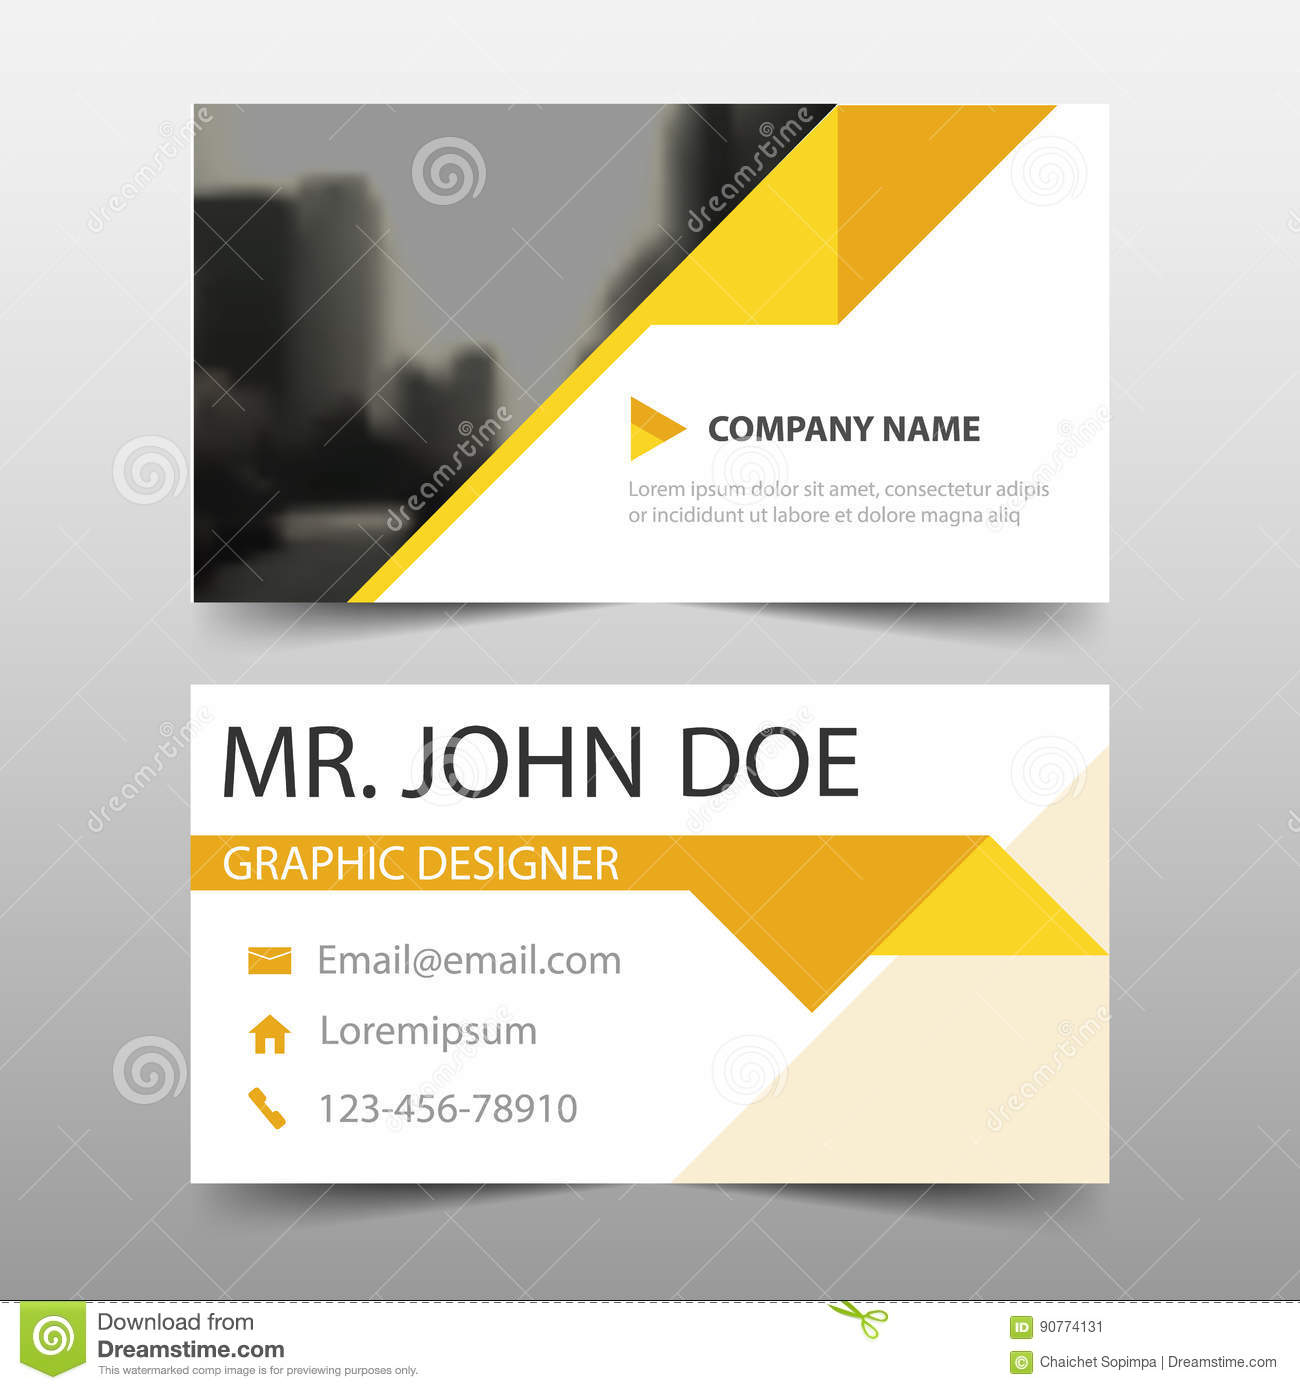 yellow triangle corporate business card name card template horizontal simple clean layout design template